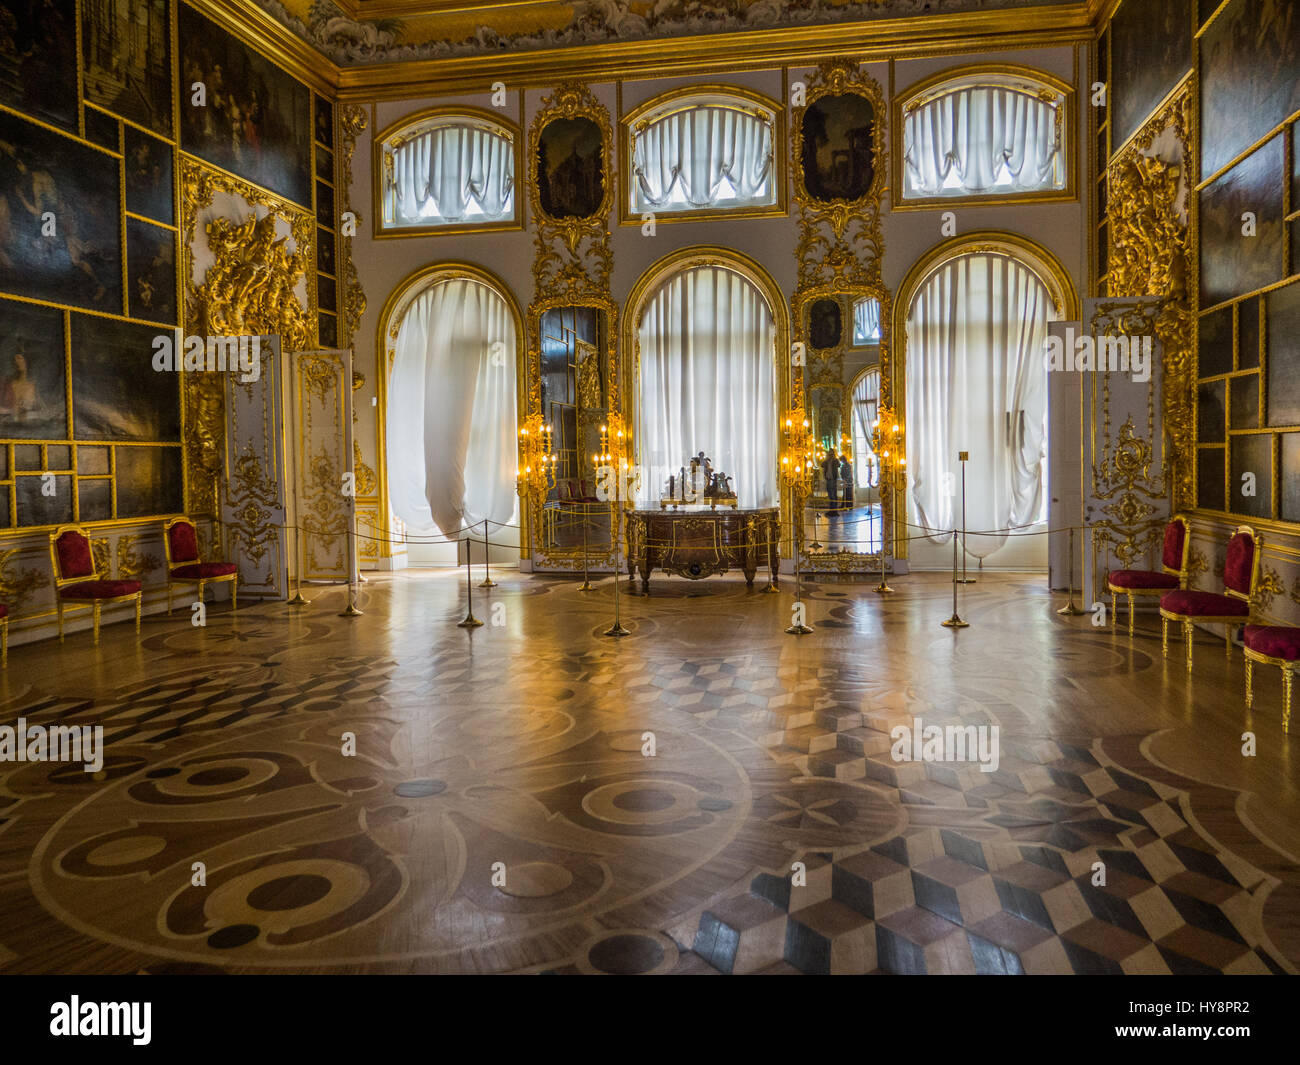 Merveilleux Catherine Palace Interiors. Pushkin, St. Petersburg, Russia   Stock Image